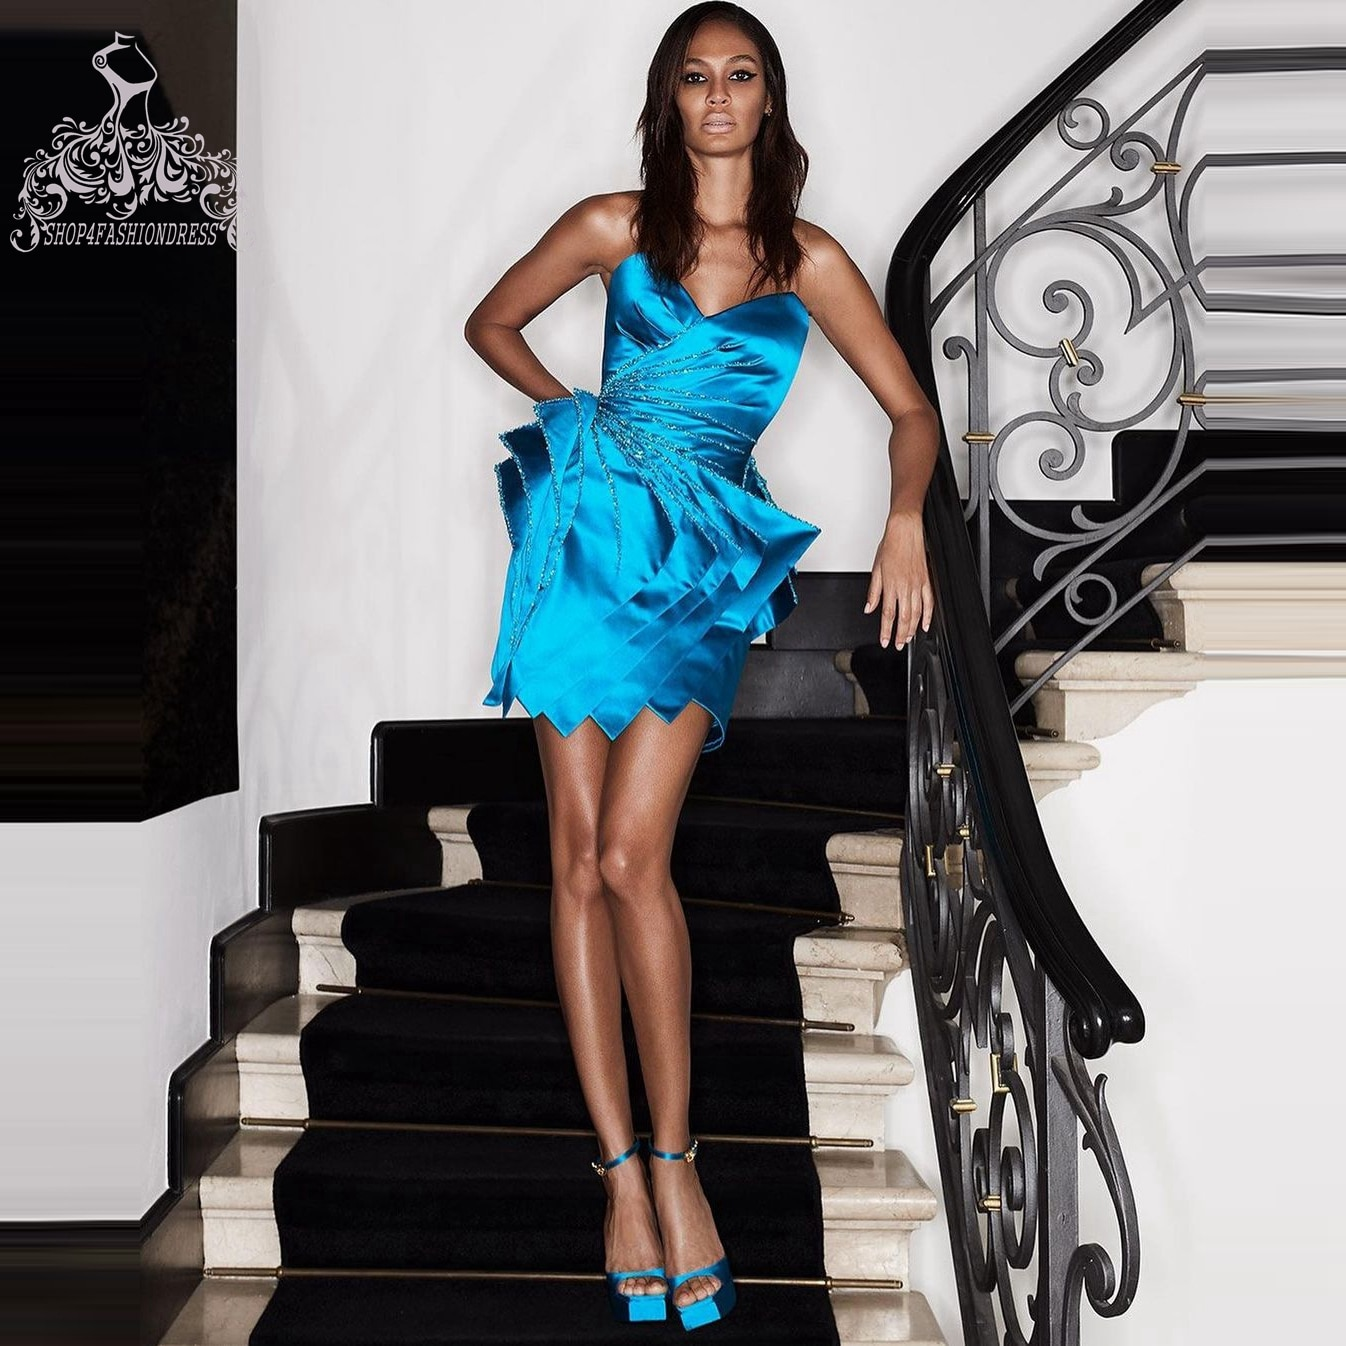 Fashion Royal Blue Mini Cocktail Dresses Sparking Tiered Side Prom Gowns Sexy Strapless Backless Party Gowns Homecoming Dress